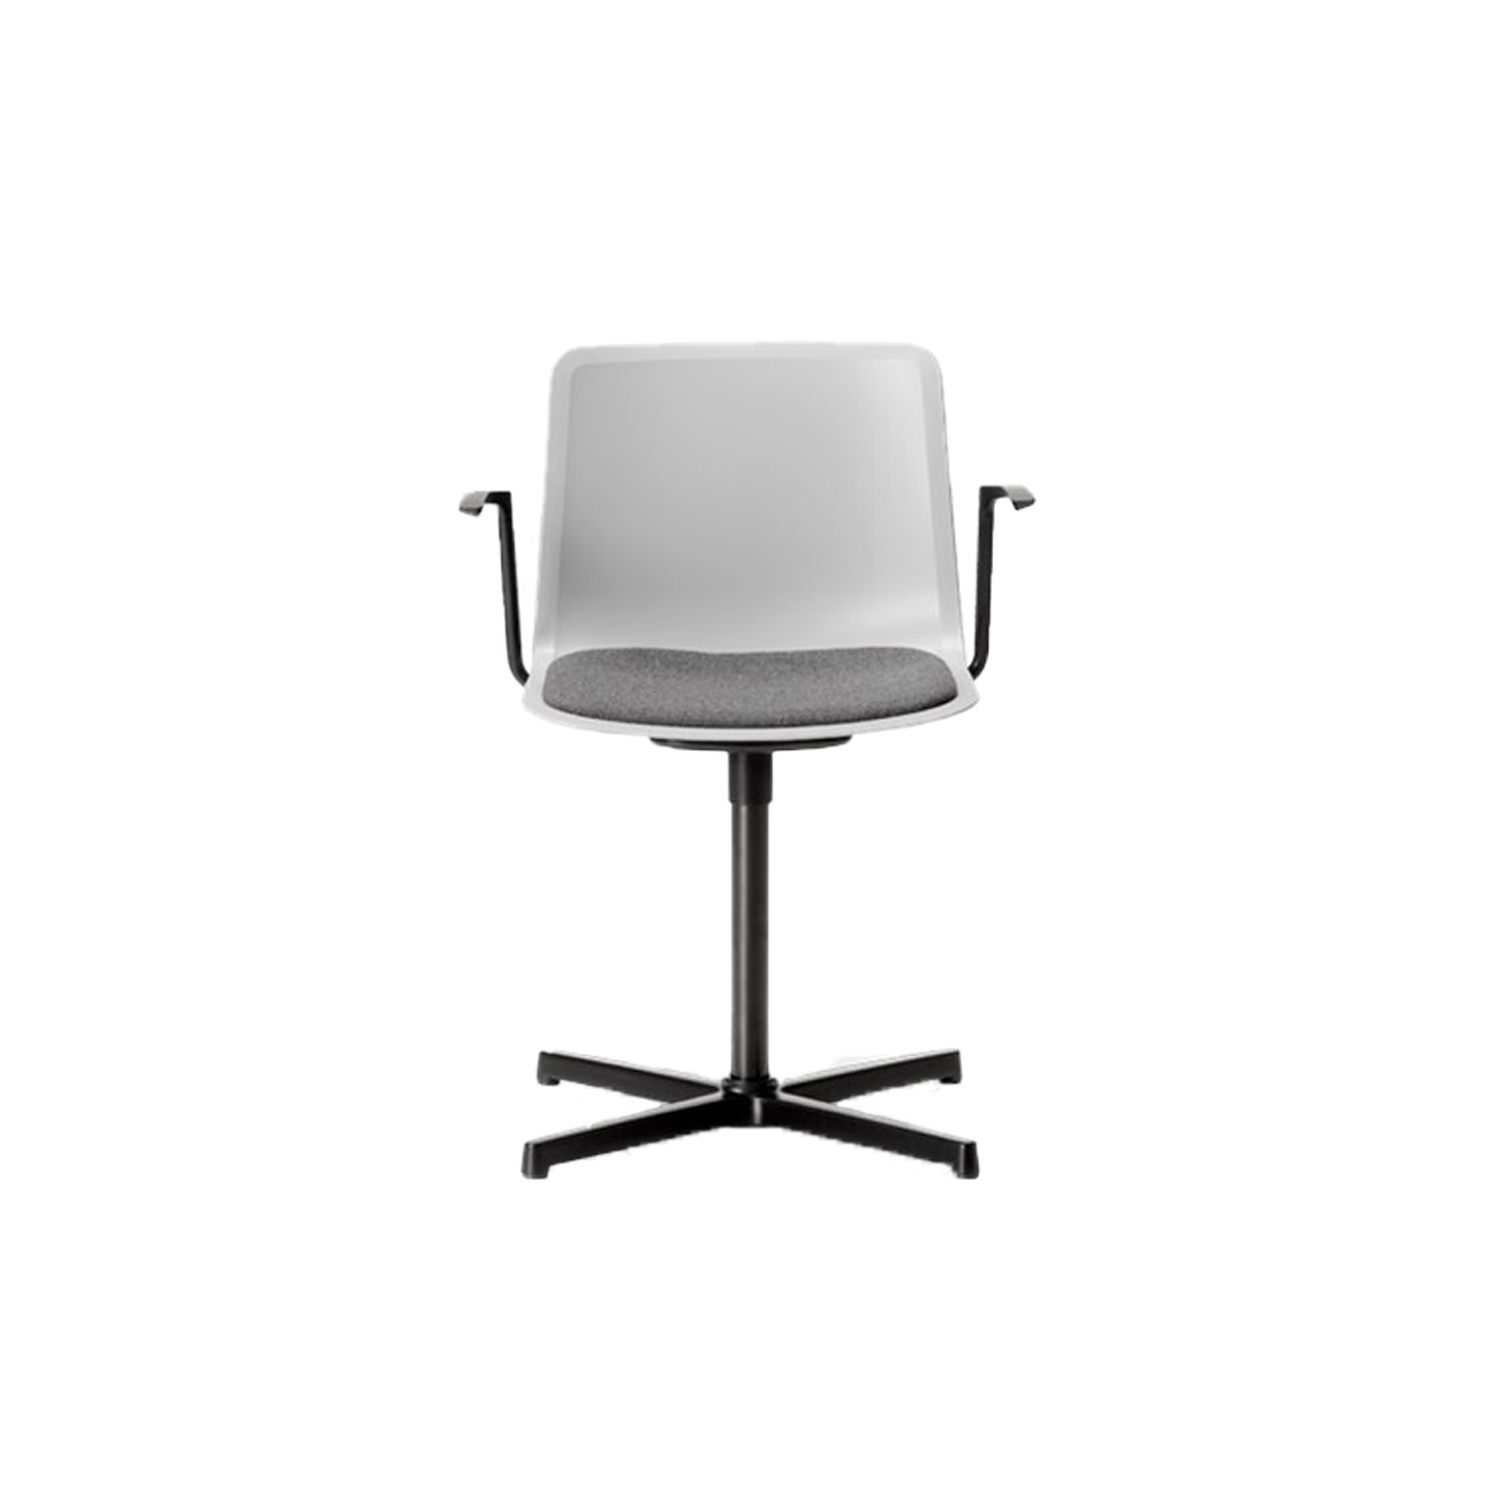 Pato Swivel X Base Armchair Seat Upholstered - Pato Swivel features a 4-point swivel base with optional casters, making it ideal for both task seating and conference rooms. The chair can be tuned from basic to exclusive with optional upholstery.  Pato is a prime example of our focus on sustainability and protecting the environment, reflected in a chair that's 100% renewable and recyclable. All components can be incorporated into future furniture production, thus contributing to a circular economy by minimising the use of materials, resources, waste and pollution.   Merging traditional production methods with cutting-edge technology, Pato is a human-centric, highly versatile series of multi-purpose functional furniture that draws on our in-depth experience with materials, immaculate detailing and heritage of fine craftsmanship. Allowing us to apply our high standards of texture, finish and carpentry techniques to an array of materials in addition to wood for products aimed at a mass market.   With its clean lines and curves, Pato echoes the ethos of Danish-Icelandic design duo Welling/Ludvik. Demonstrating their belief that good design has the ability to be interesting, even when reduced to its most simple form. Where anything extraneous is eliminated and every detail has a purpose.   Together we spent nearly three years developing the shell structure to have a soft surface that's also wear and tear resistant. Enhancing the chair's ability to optimally conform to the user's body is a subtle beveled edge. A technique from classic cabinetmaking, which gives the chair a sense of handcrafted finesse. Each Pato is detailed and finished by hand by our highly skilled crafts people, who refine the beveled edge and the silky, resilient surface. Setting a new standard for the execution and finish of polypropylene.   Since the success of its initial launch, we've expanded Pato into an extensive collection of variants, featuring armchairs, barstools, office swivel chairs and a l